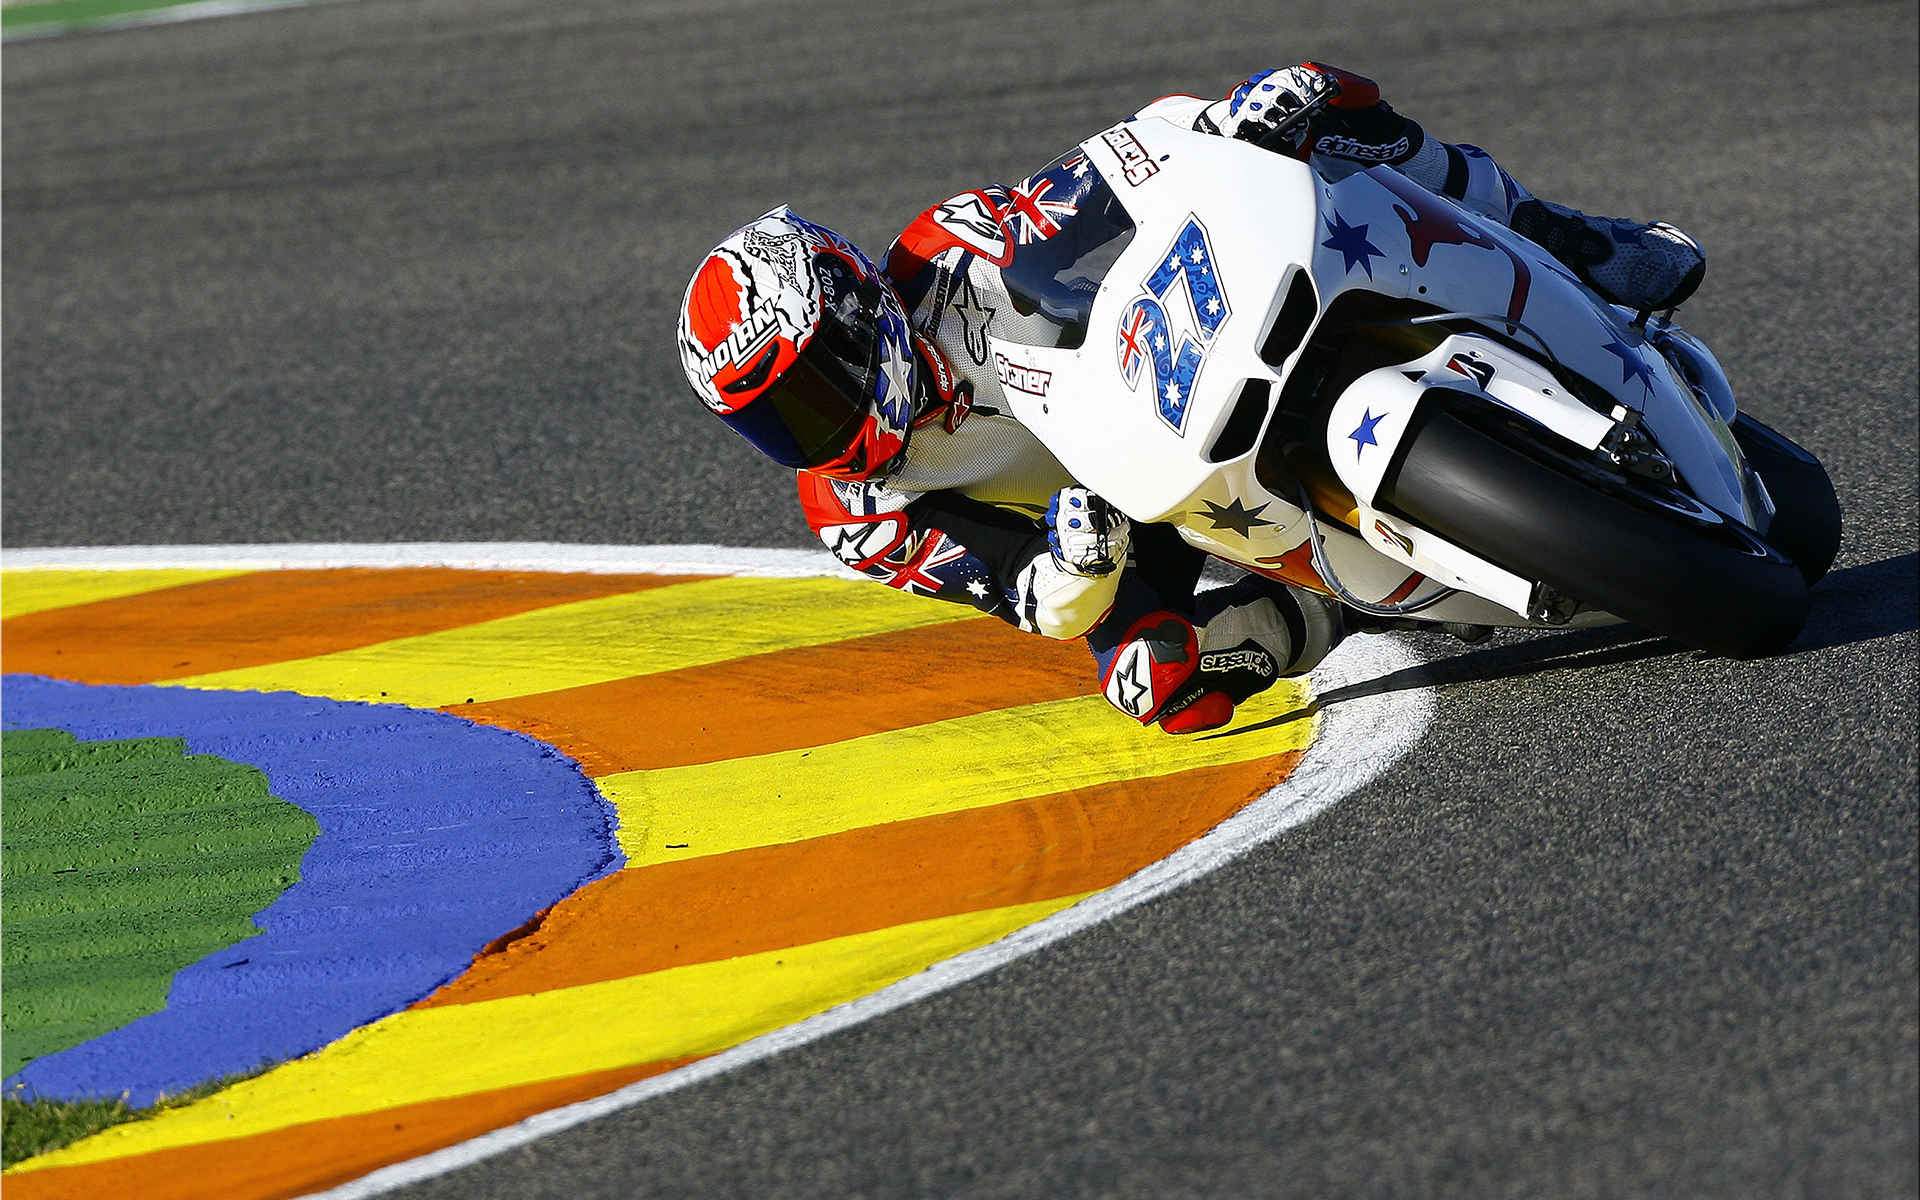 Bike Racing Wallpaper Hd Motorcycle Racing Wallpapers Pictures Images